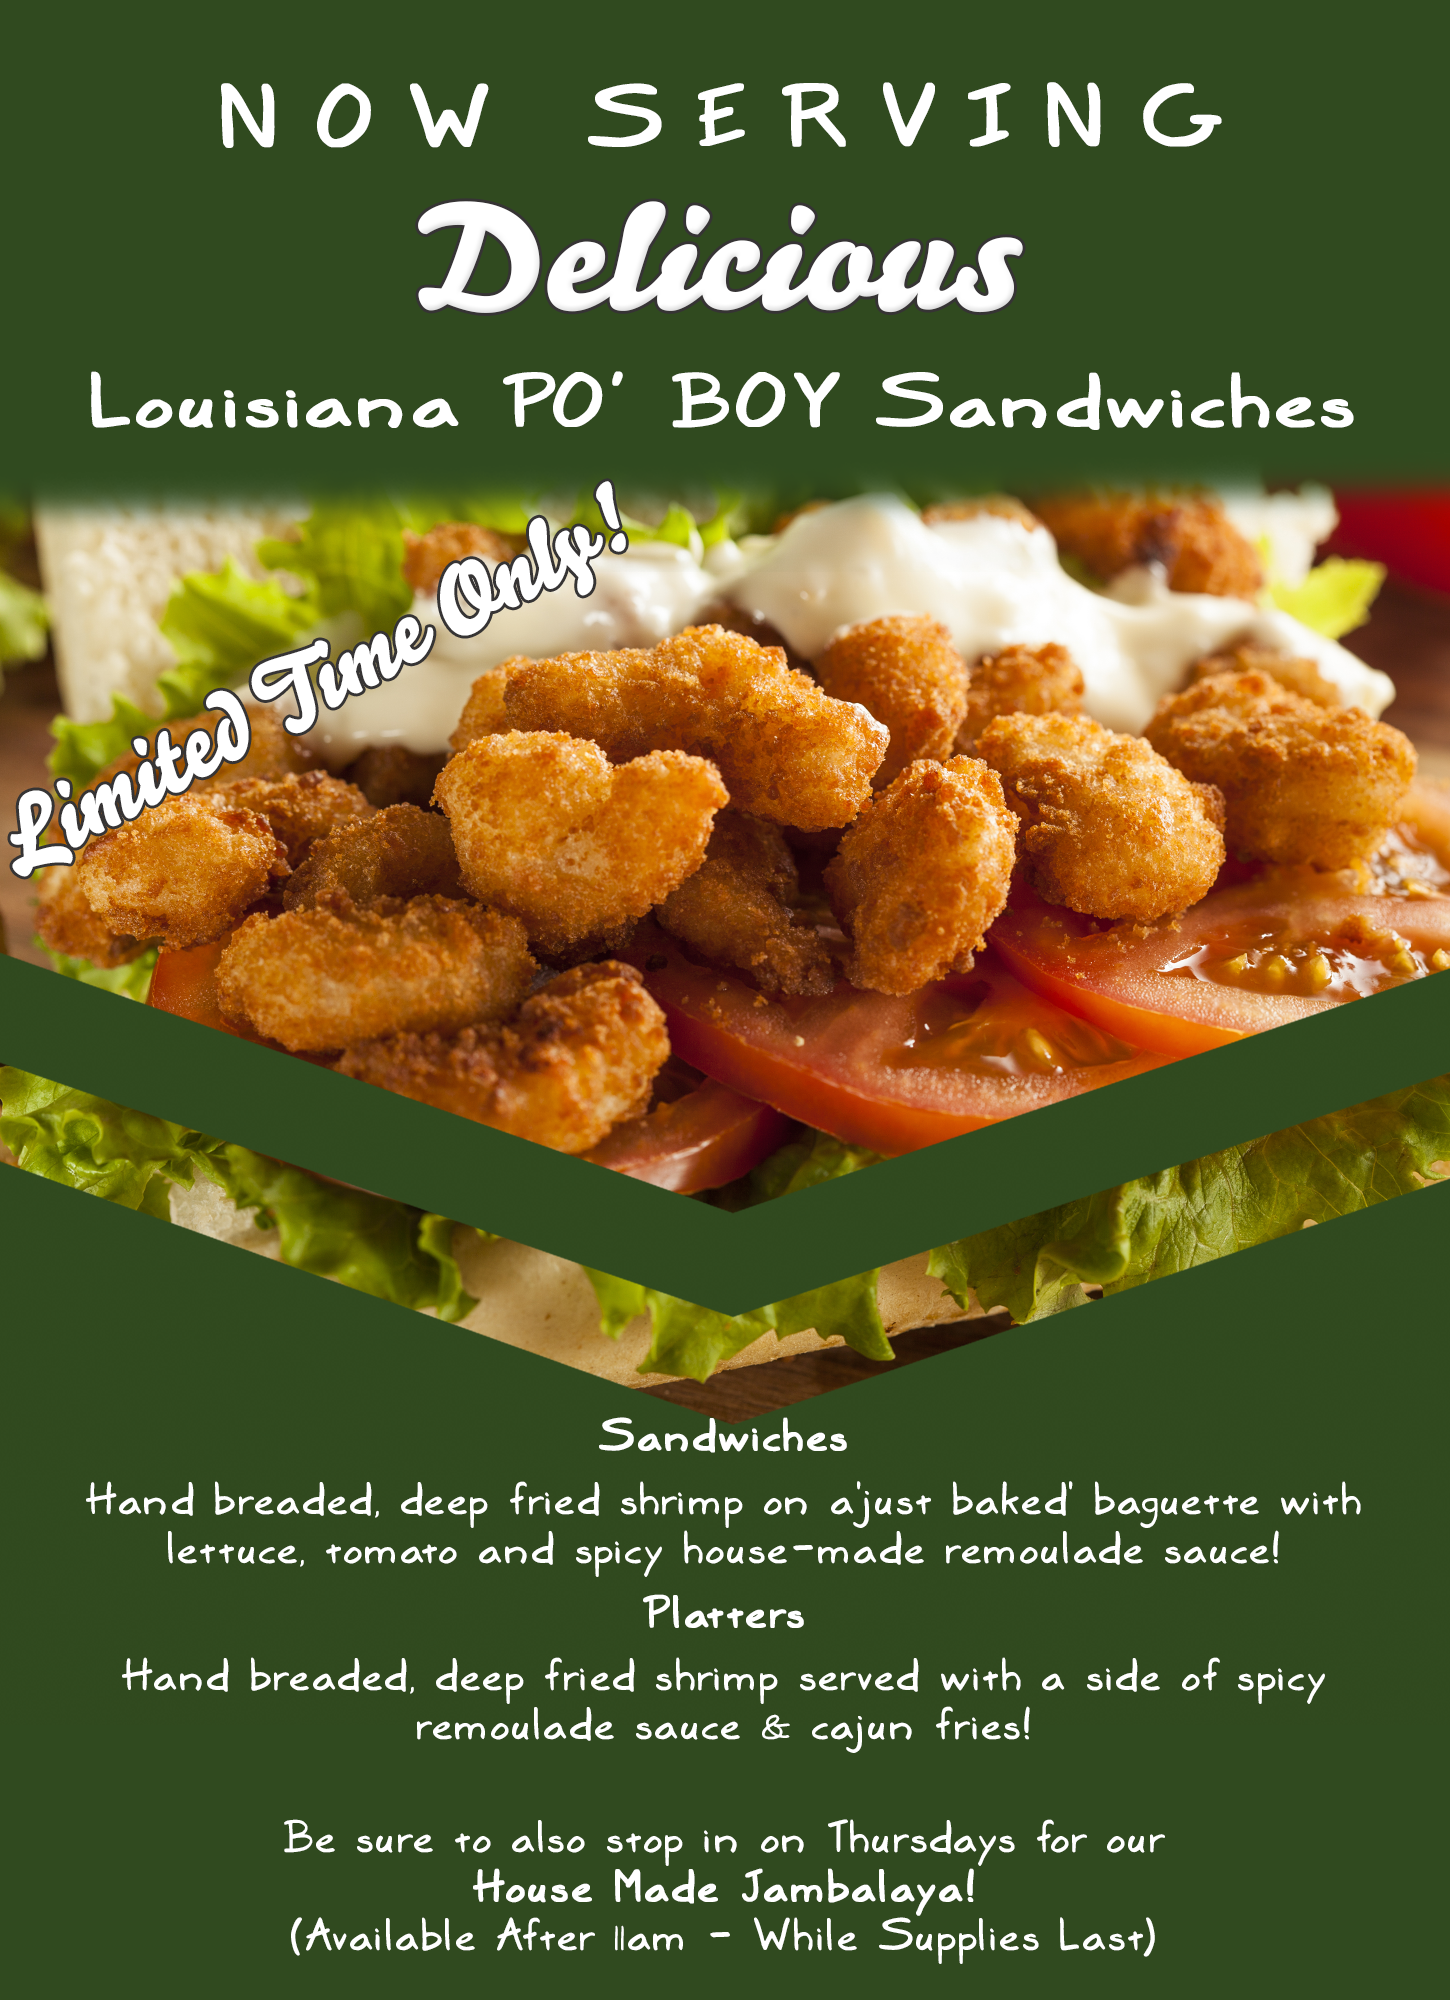 Louisiana Style PO ' BOY sandwiches!! (for a limited time - starting 2/18/20)  Hand breaded, deep fried shrimp on a 'just baked' baguette with lettuce, tomato and spicy house-made remoulade sauce!   Platters Hand breaded, deep fried shrimp served with a side of spicy remoulade sauce & cajun fries!    Stop in Thursdays for house made jambalaya! (available from 11am - while supplies last)